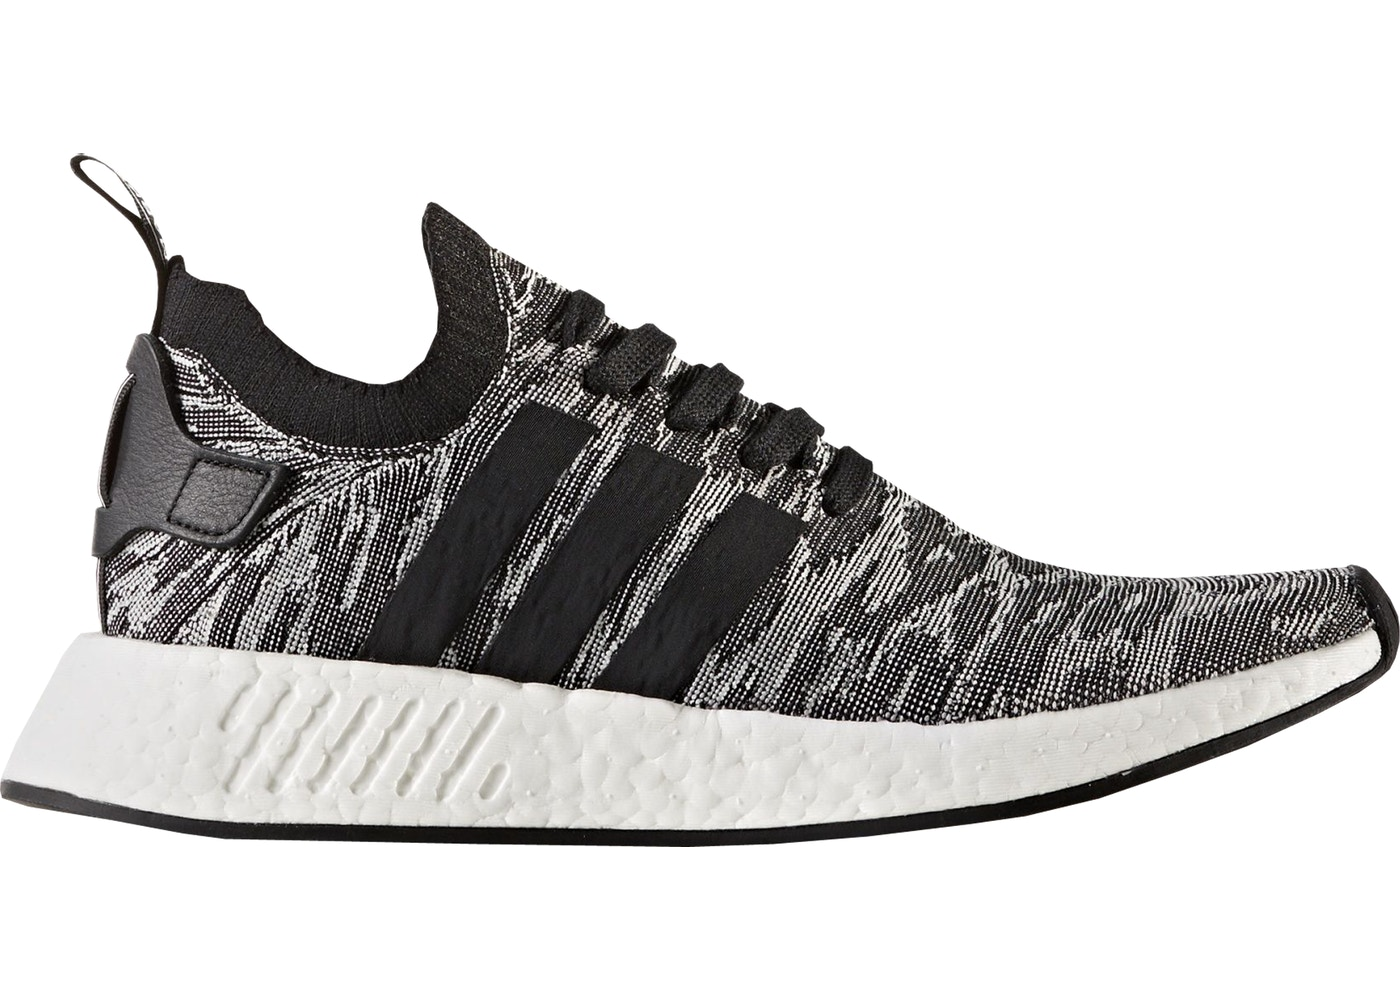 c7db204e1 Buy adidas NMD R2 Shoes & Deadstock Sneakers